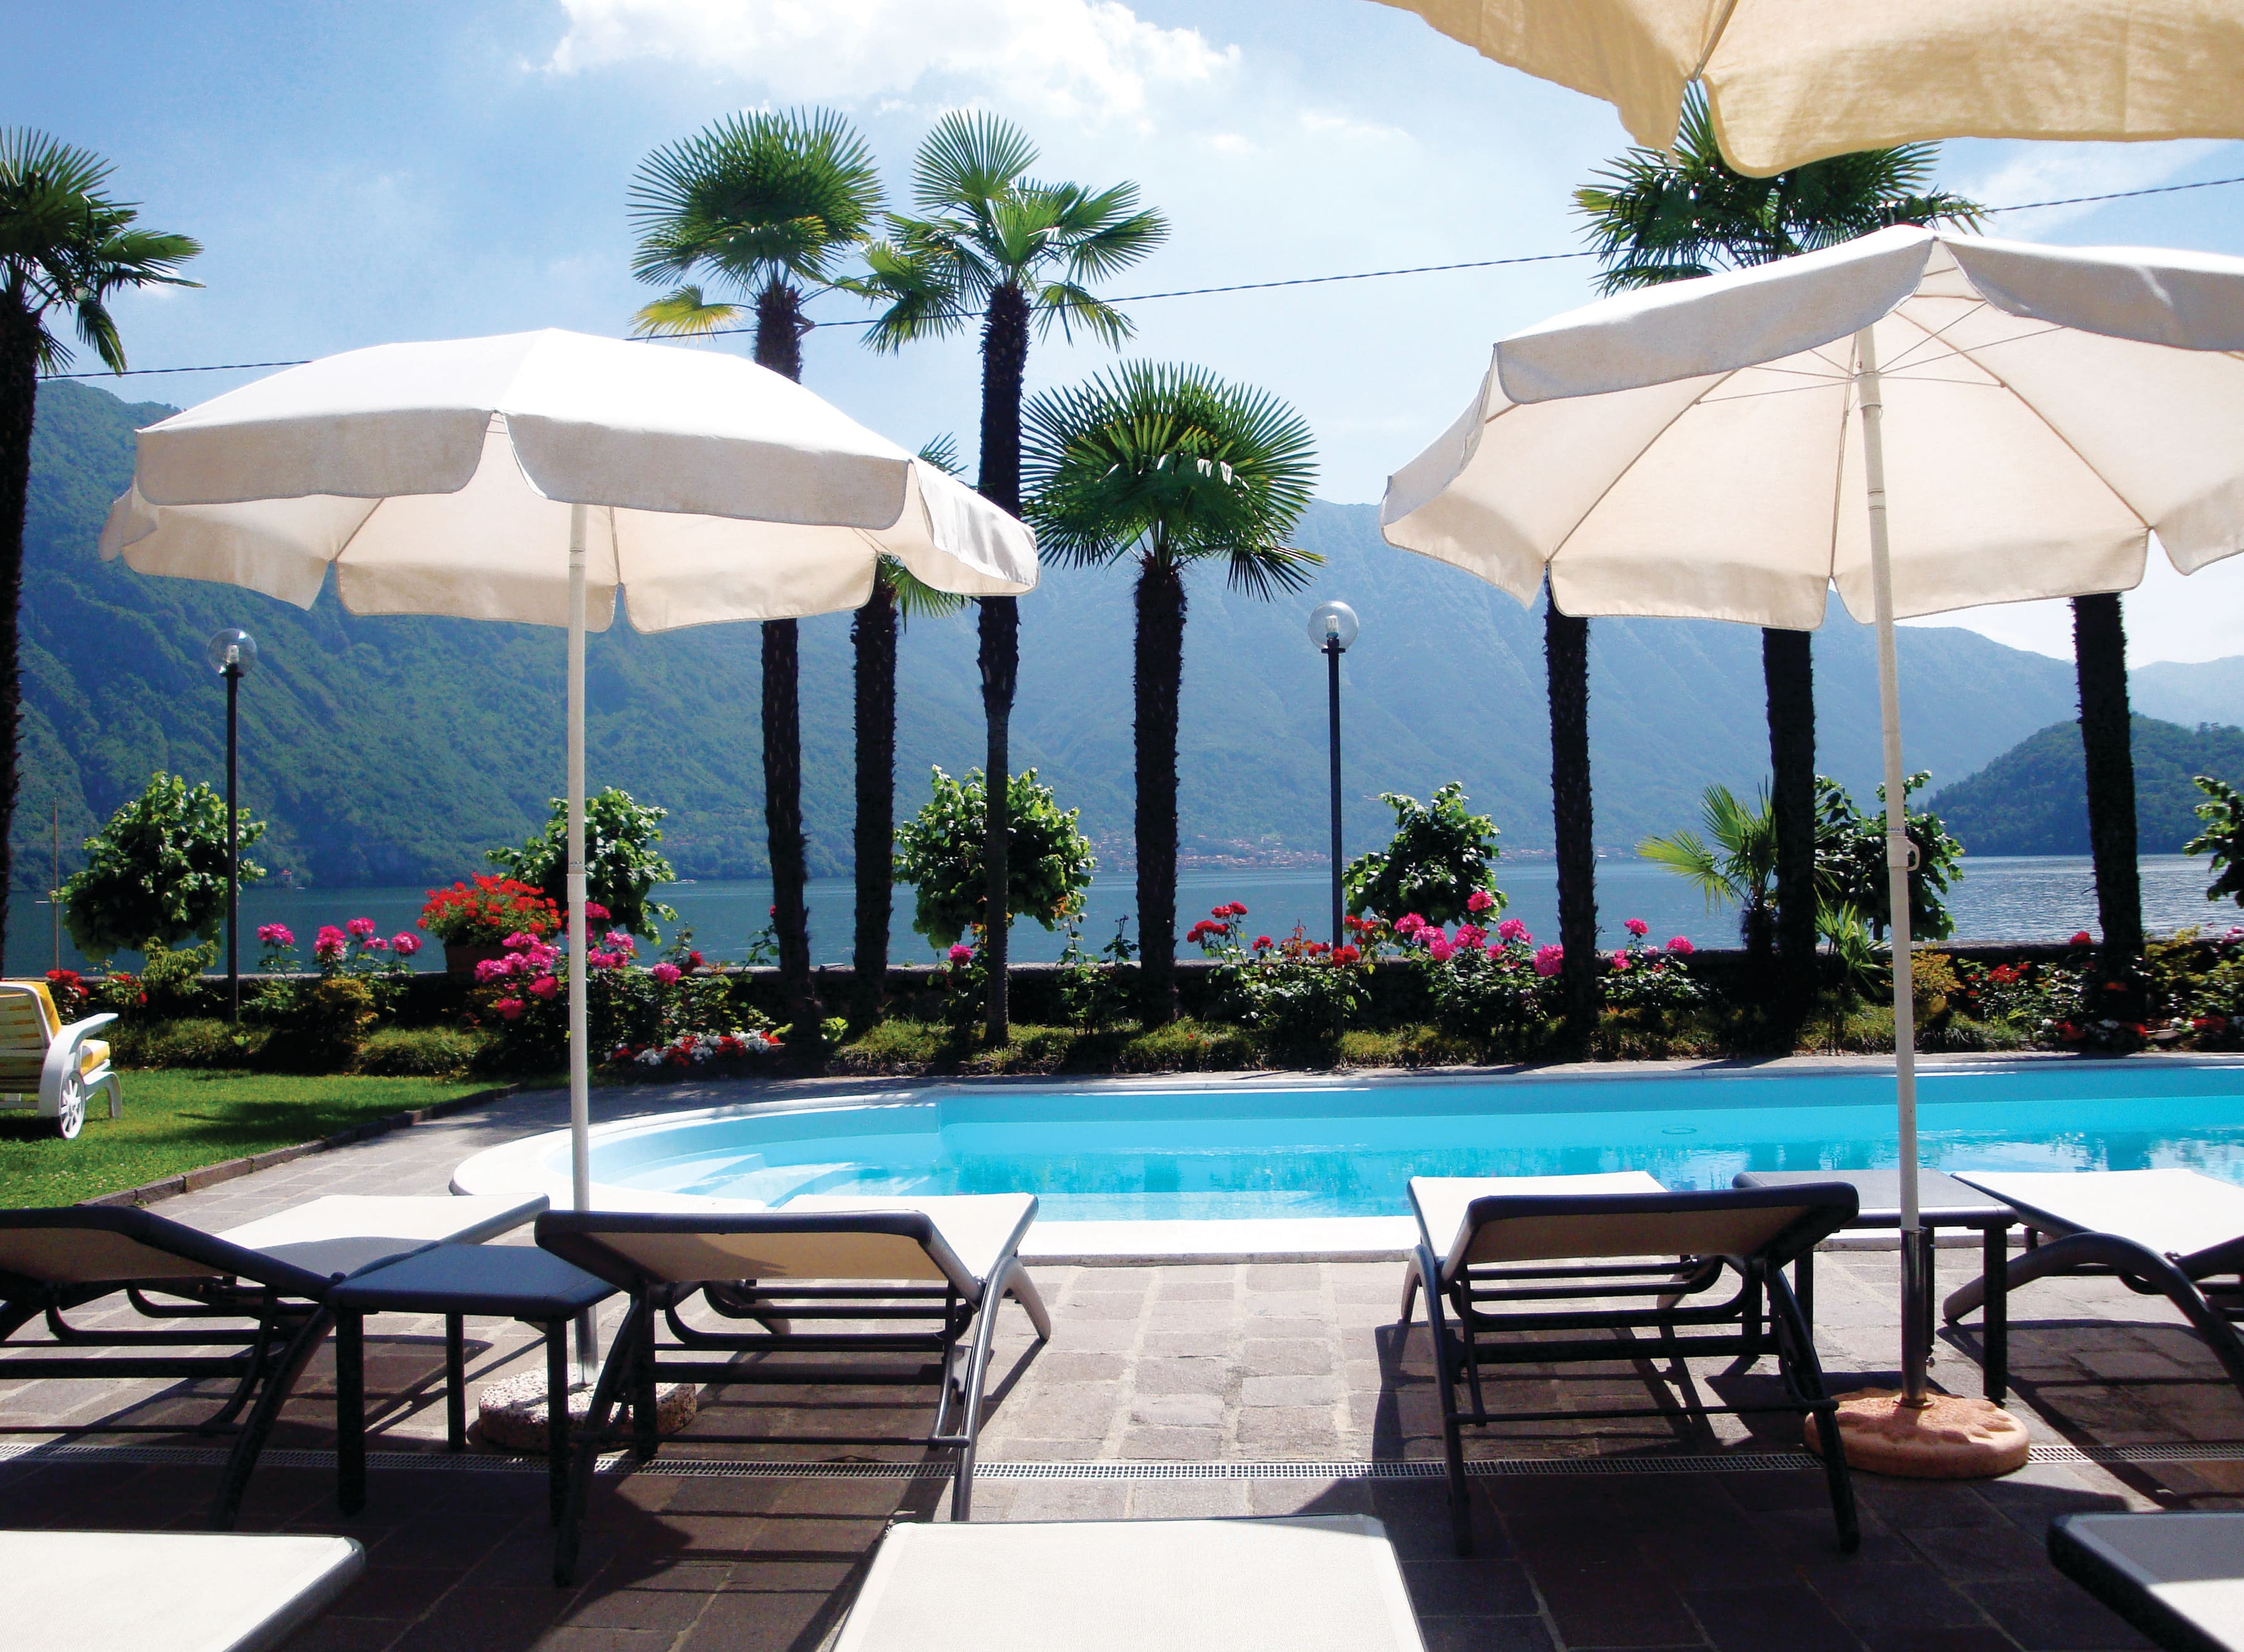 View of the pool at the Hotel Villa Marie